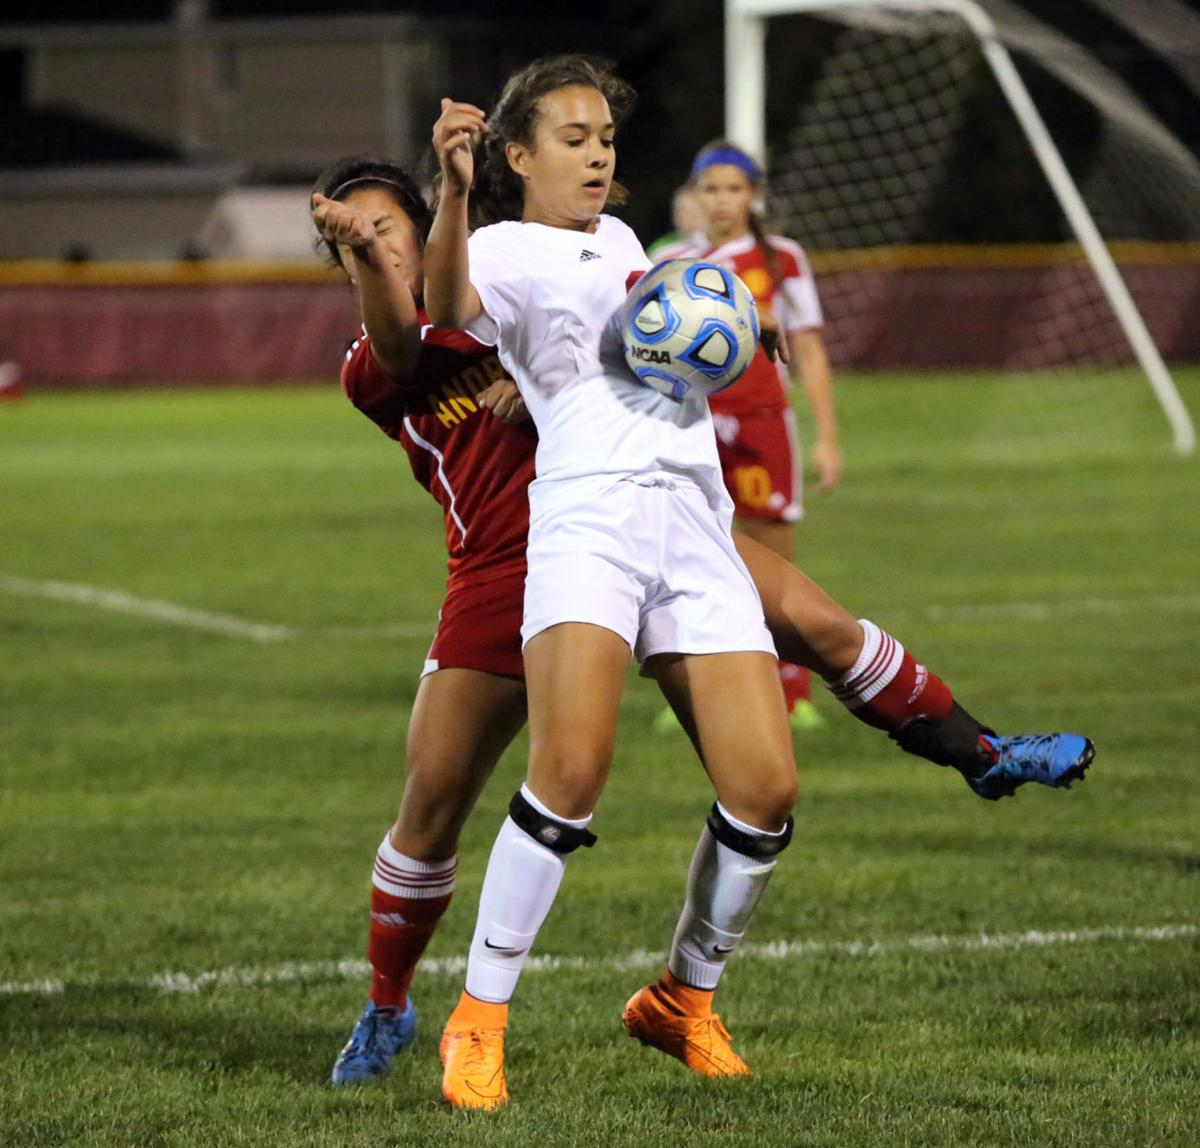 The 2016 Times All-area Girls Soccer Team